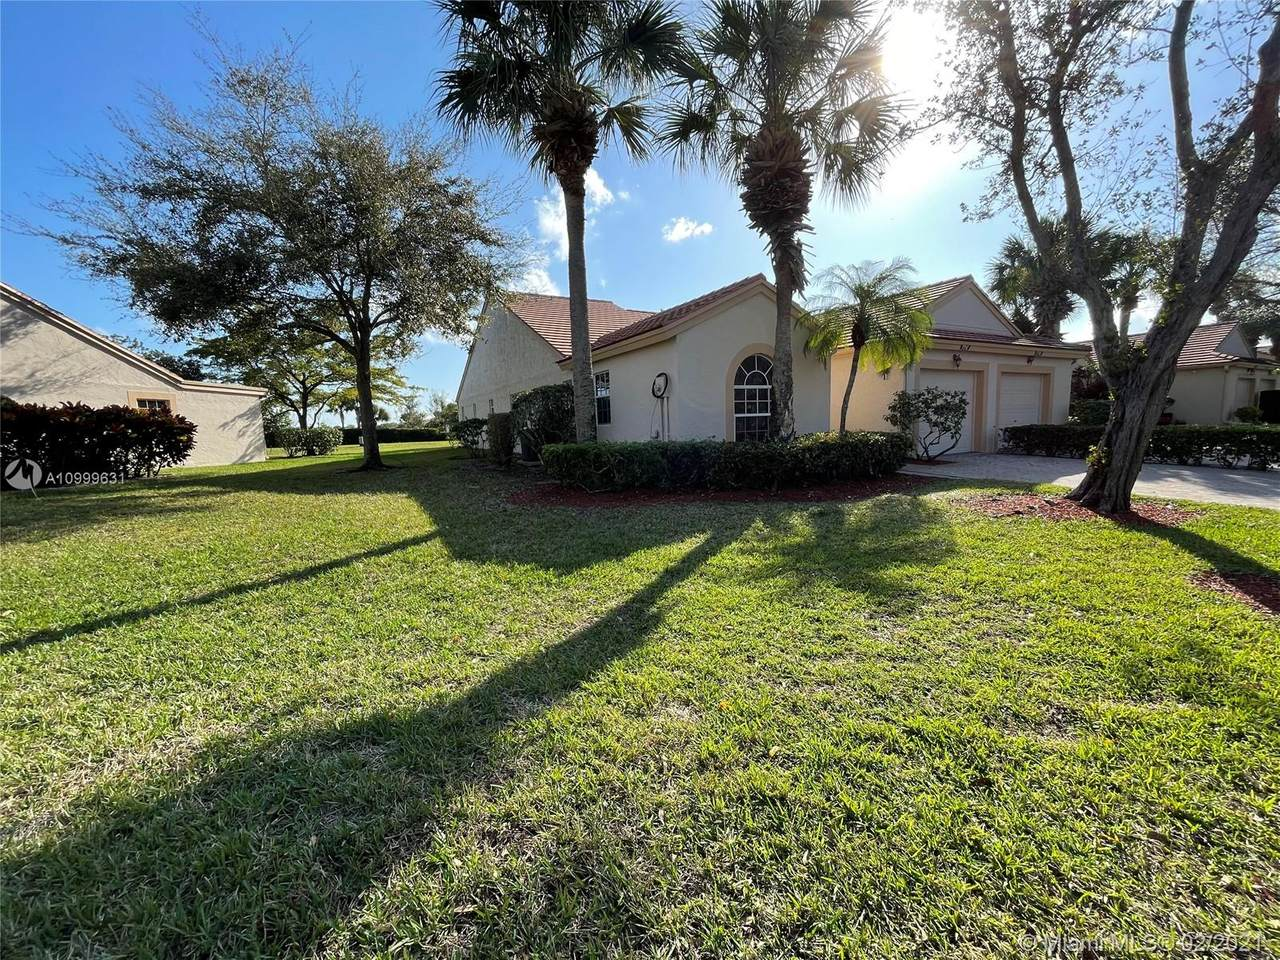 7712 Coral Lake Dr - Photo 1